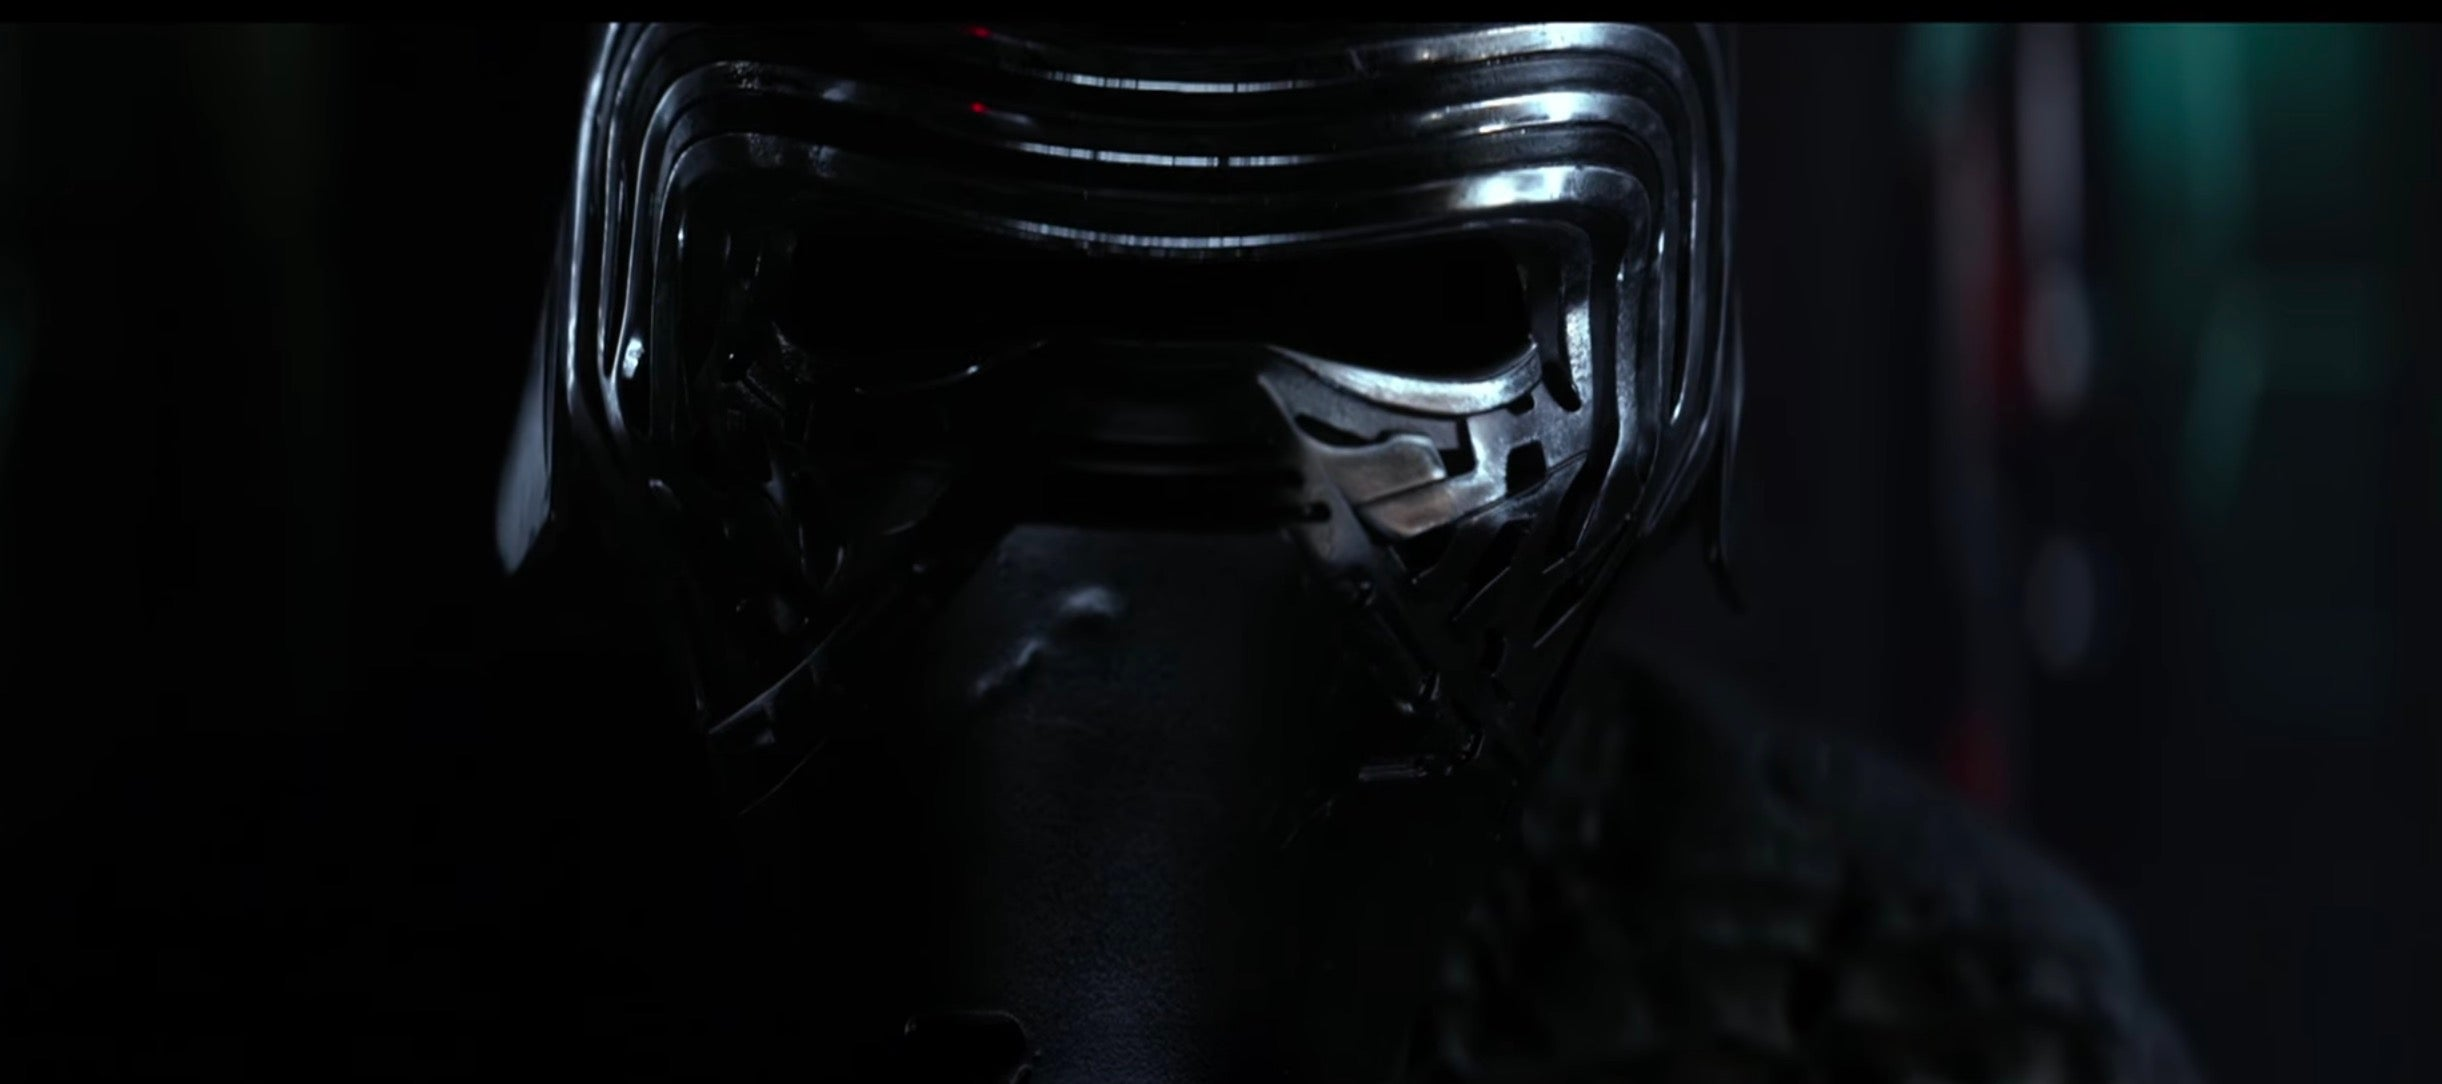 Hearing Kylo Ren Do ASMR Is A Good Way To Scare The Crap Out Of Yourself